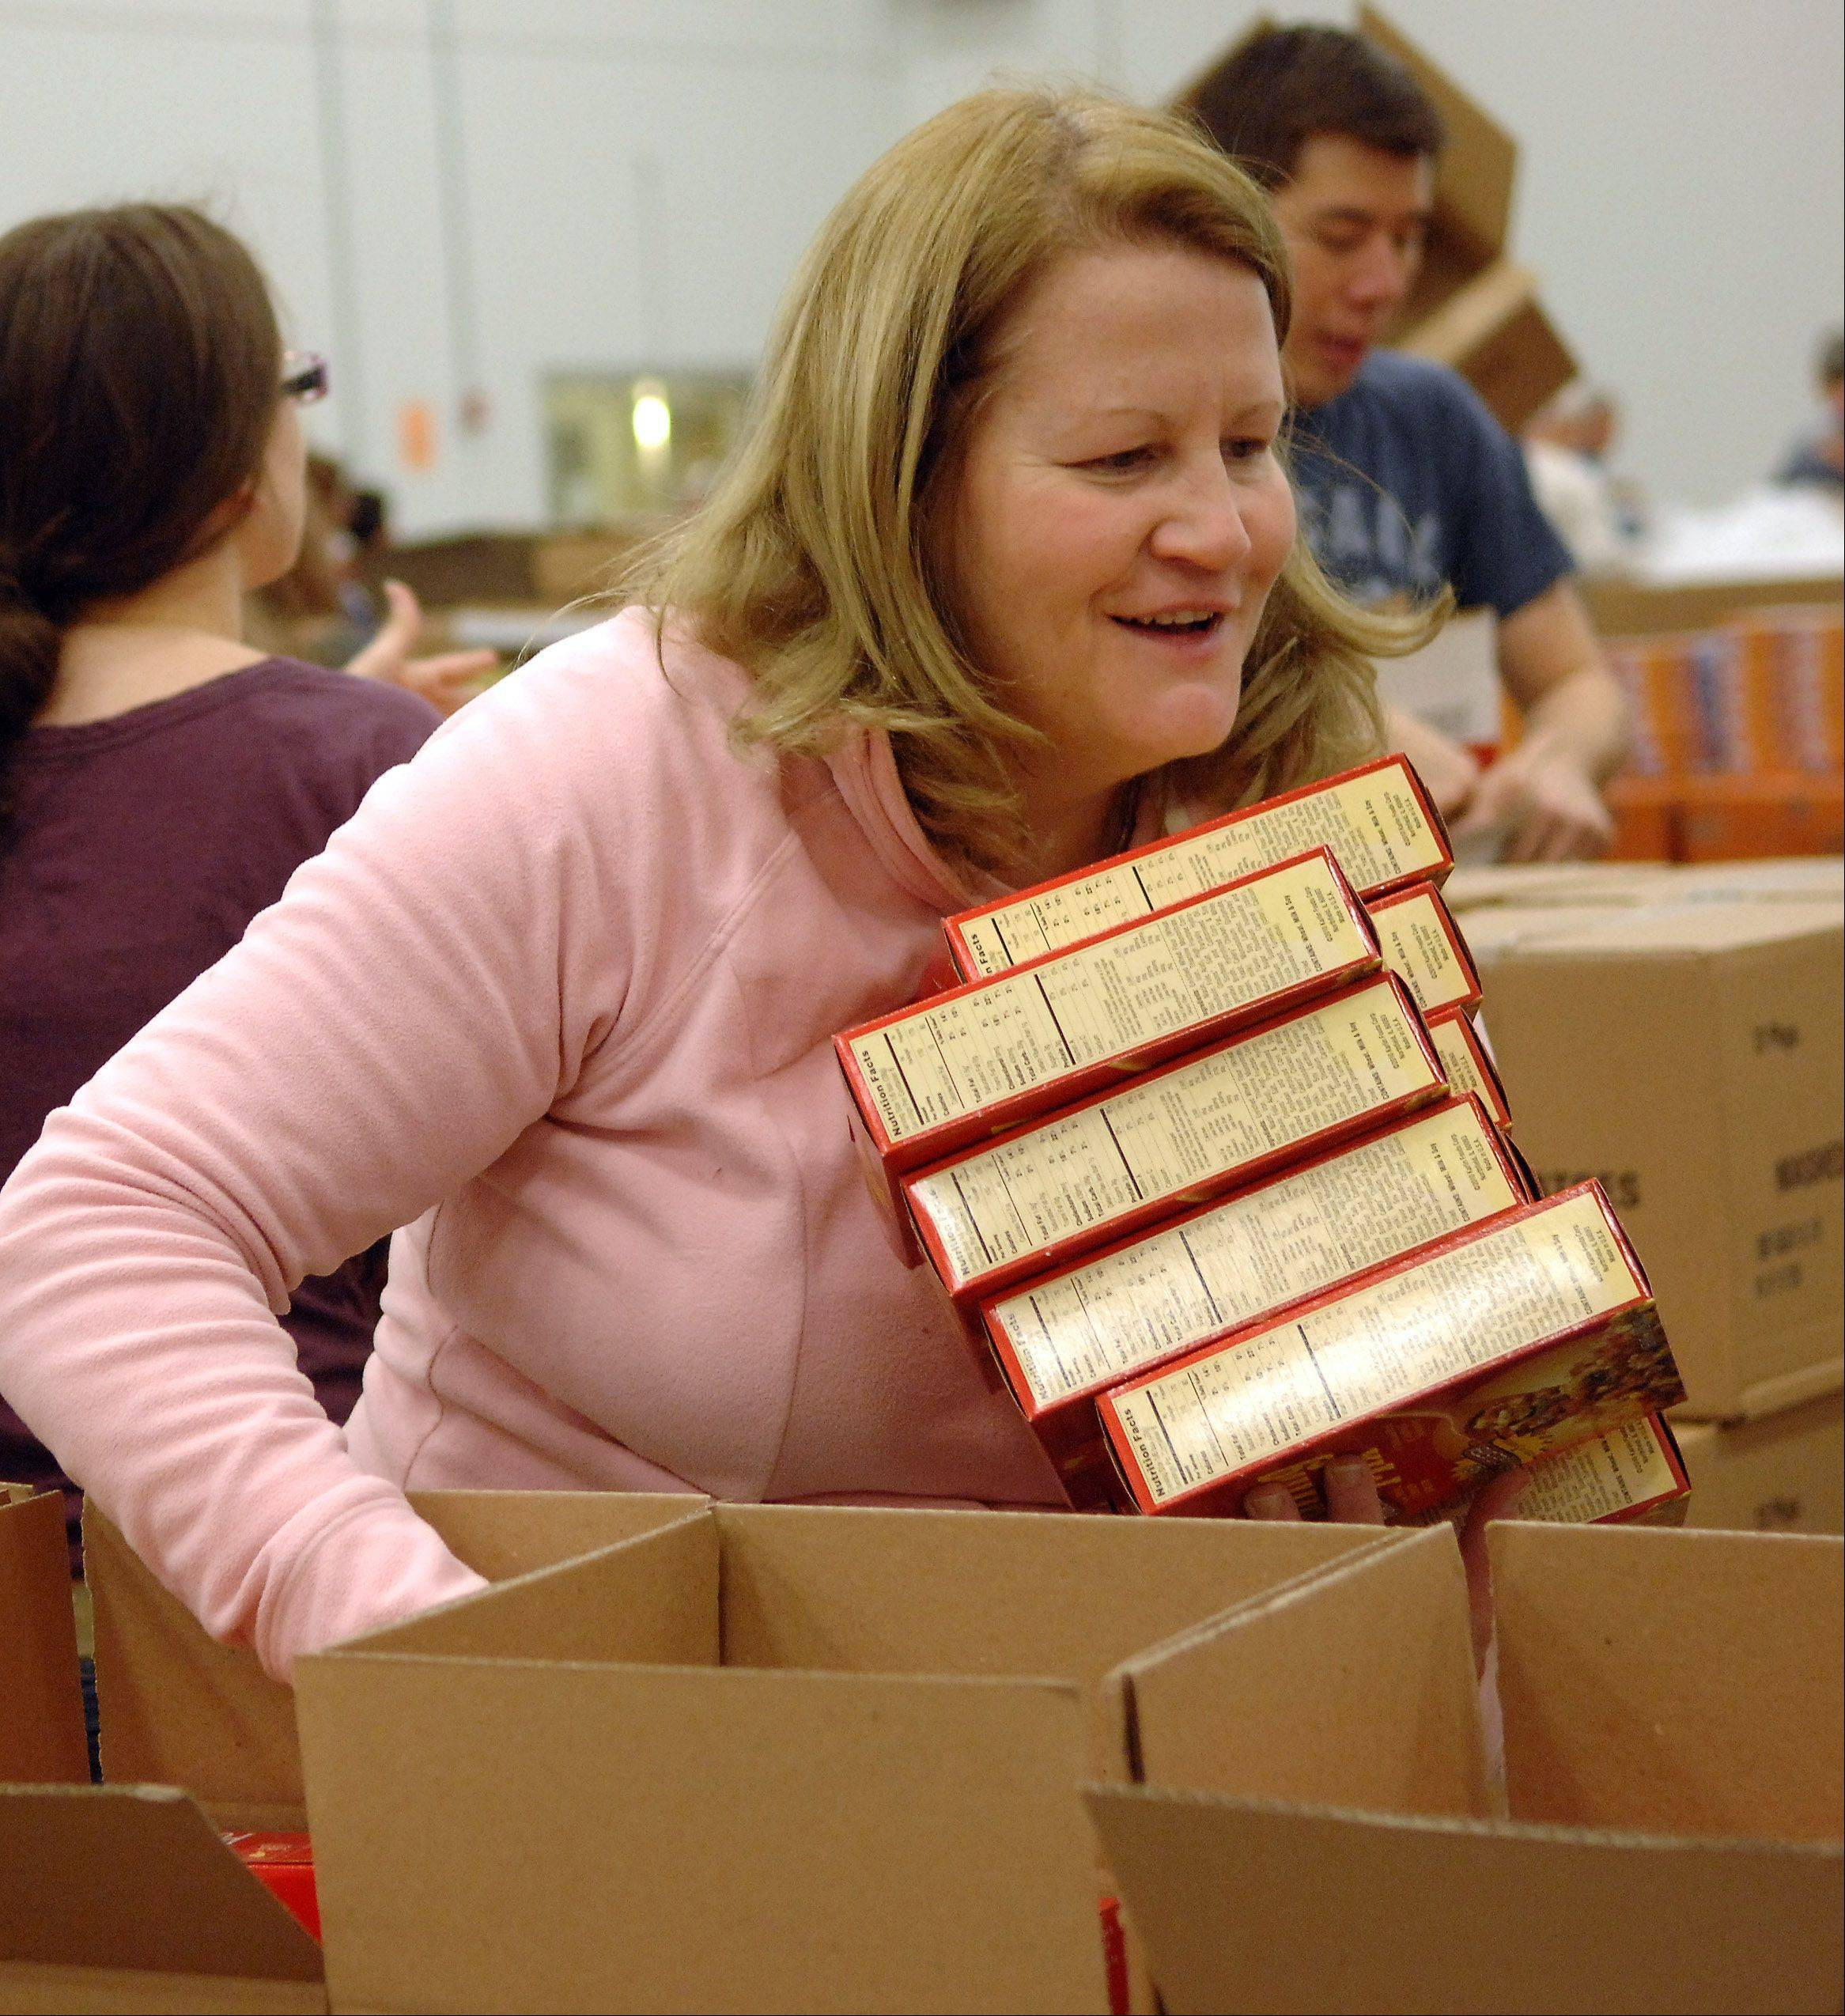 Sheila Creghin of Oak Lawn carries an armful of stuffing as more than 100 volunteers from Jewel-Osco pack boxes of holiday meals Saturday at the Northern Illinois Food Bank in Geneva. The food bank plans to prepare more than 30,000 holiday meal boxes for those in need this season.